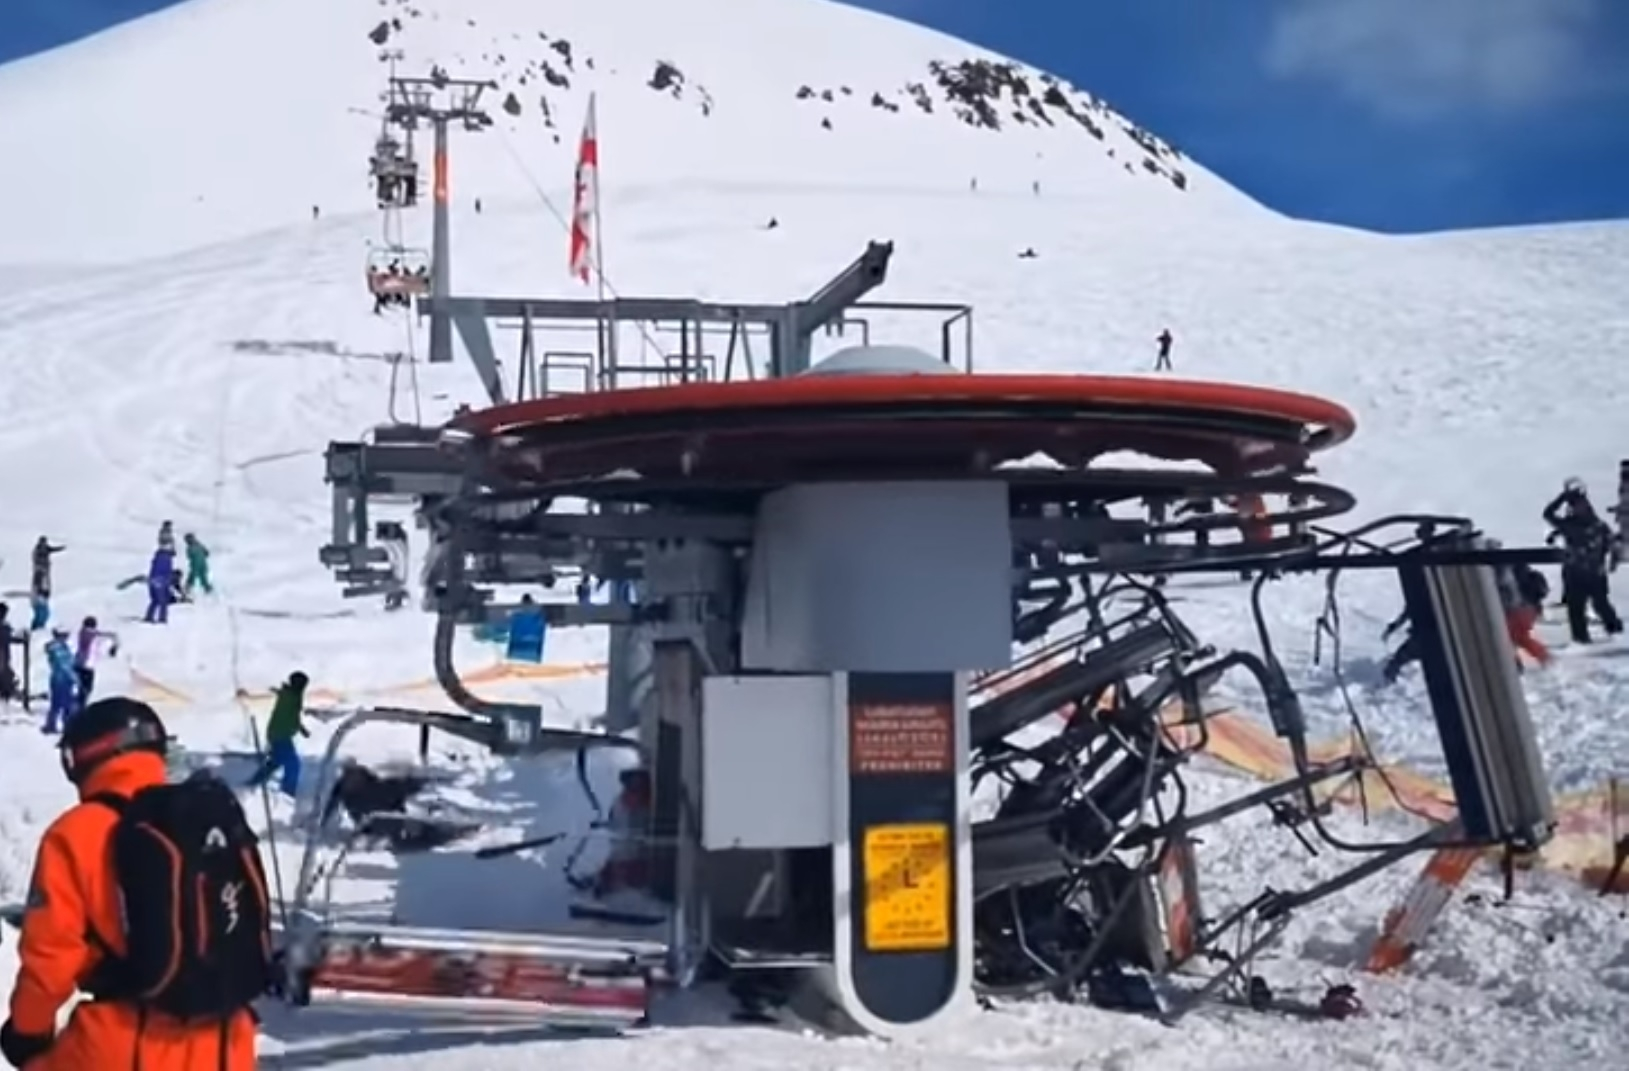 The Craziest Ski Lift Malfunction You Will Ever See